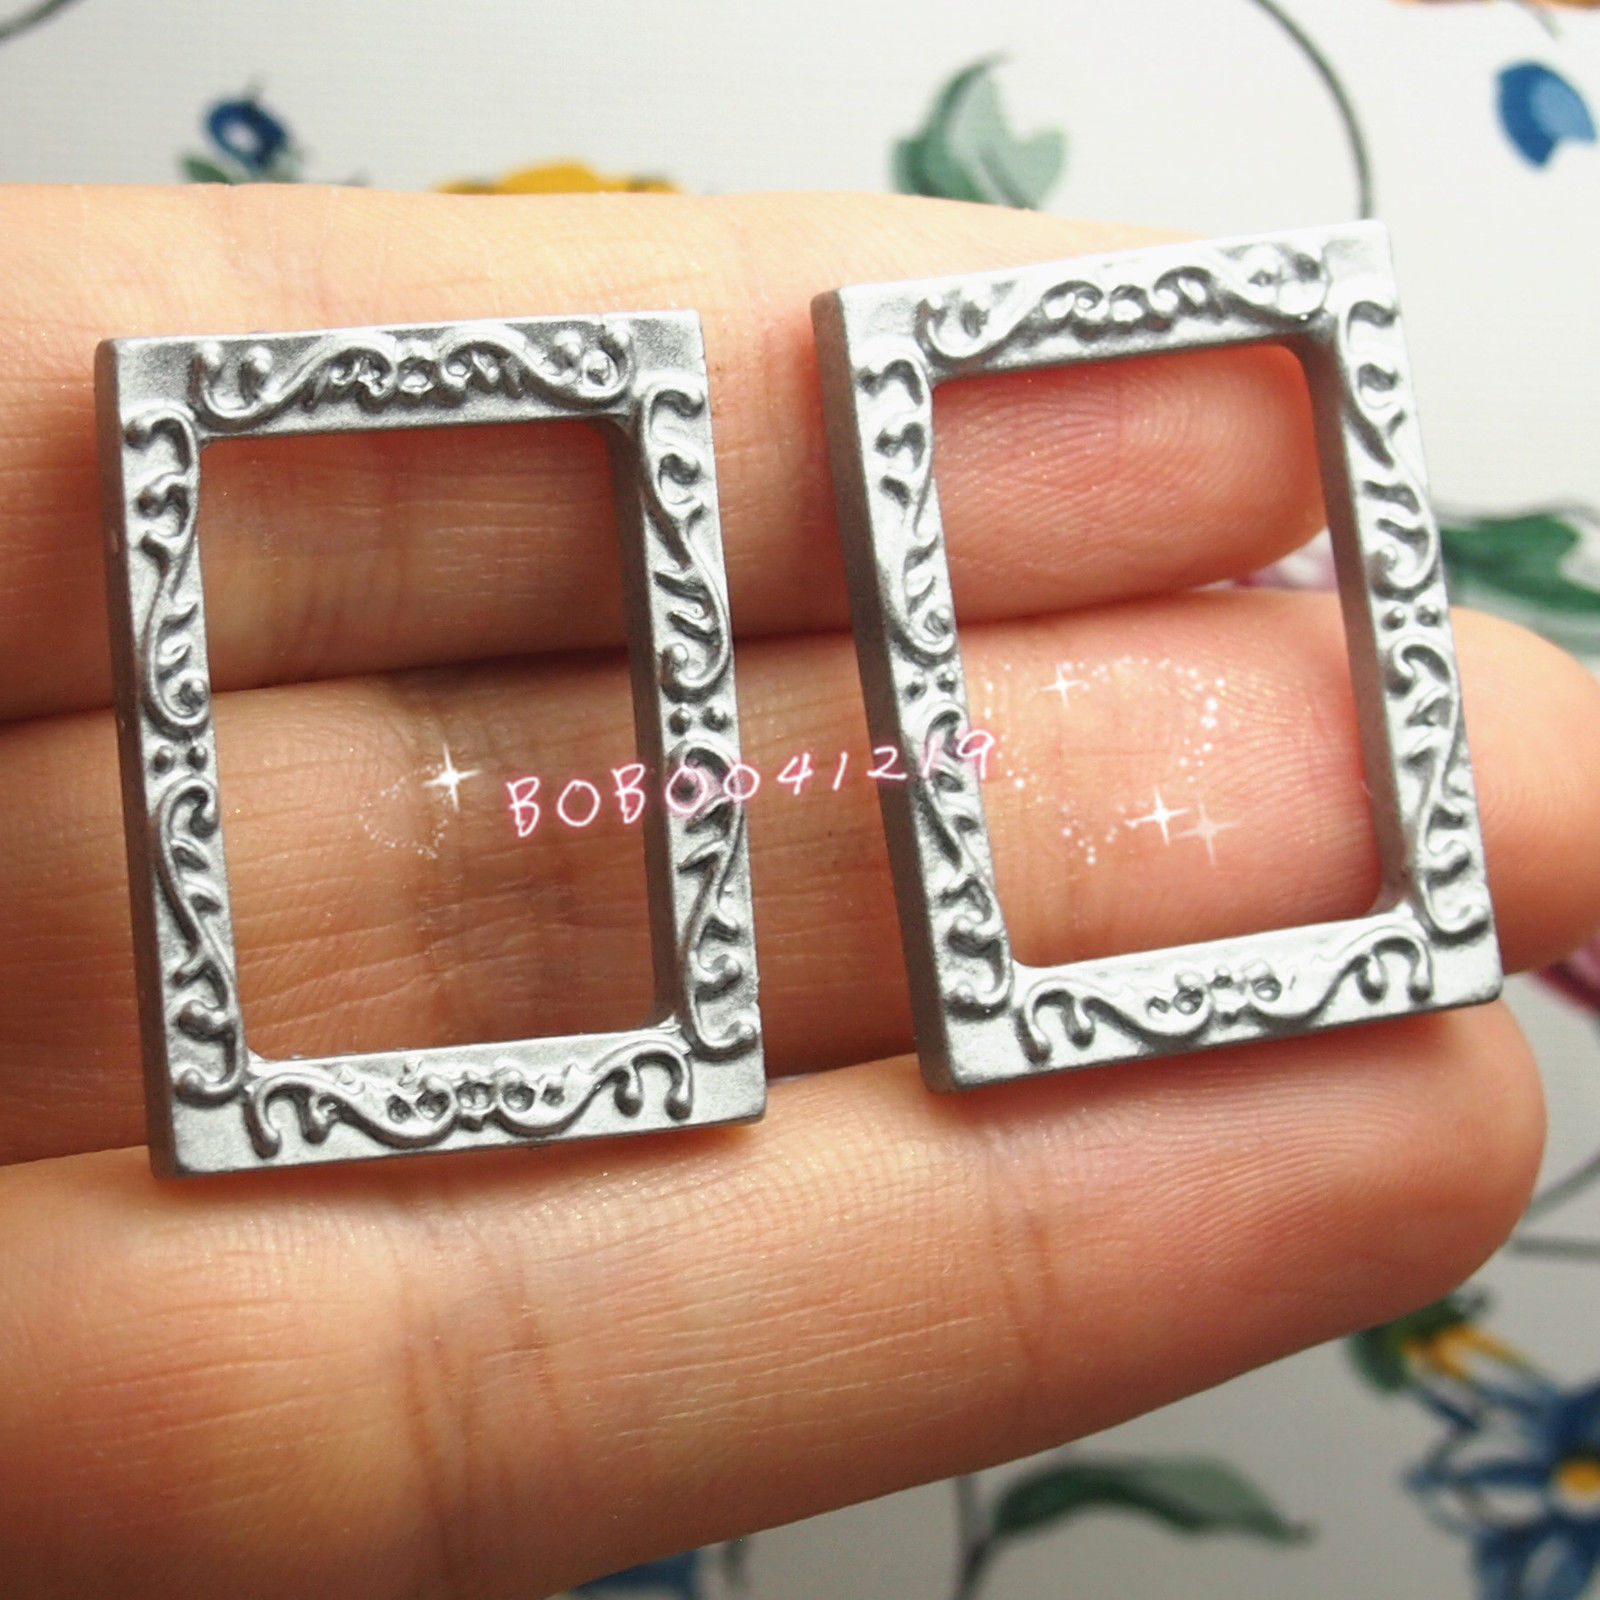 Toys & Hobbies Dollhouse Miniature 1:12 Toy 2 Small Plastic Silver Rectangle Frames L2.7cm Em3s Relieving Heat And Thirst.